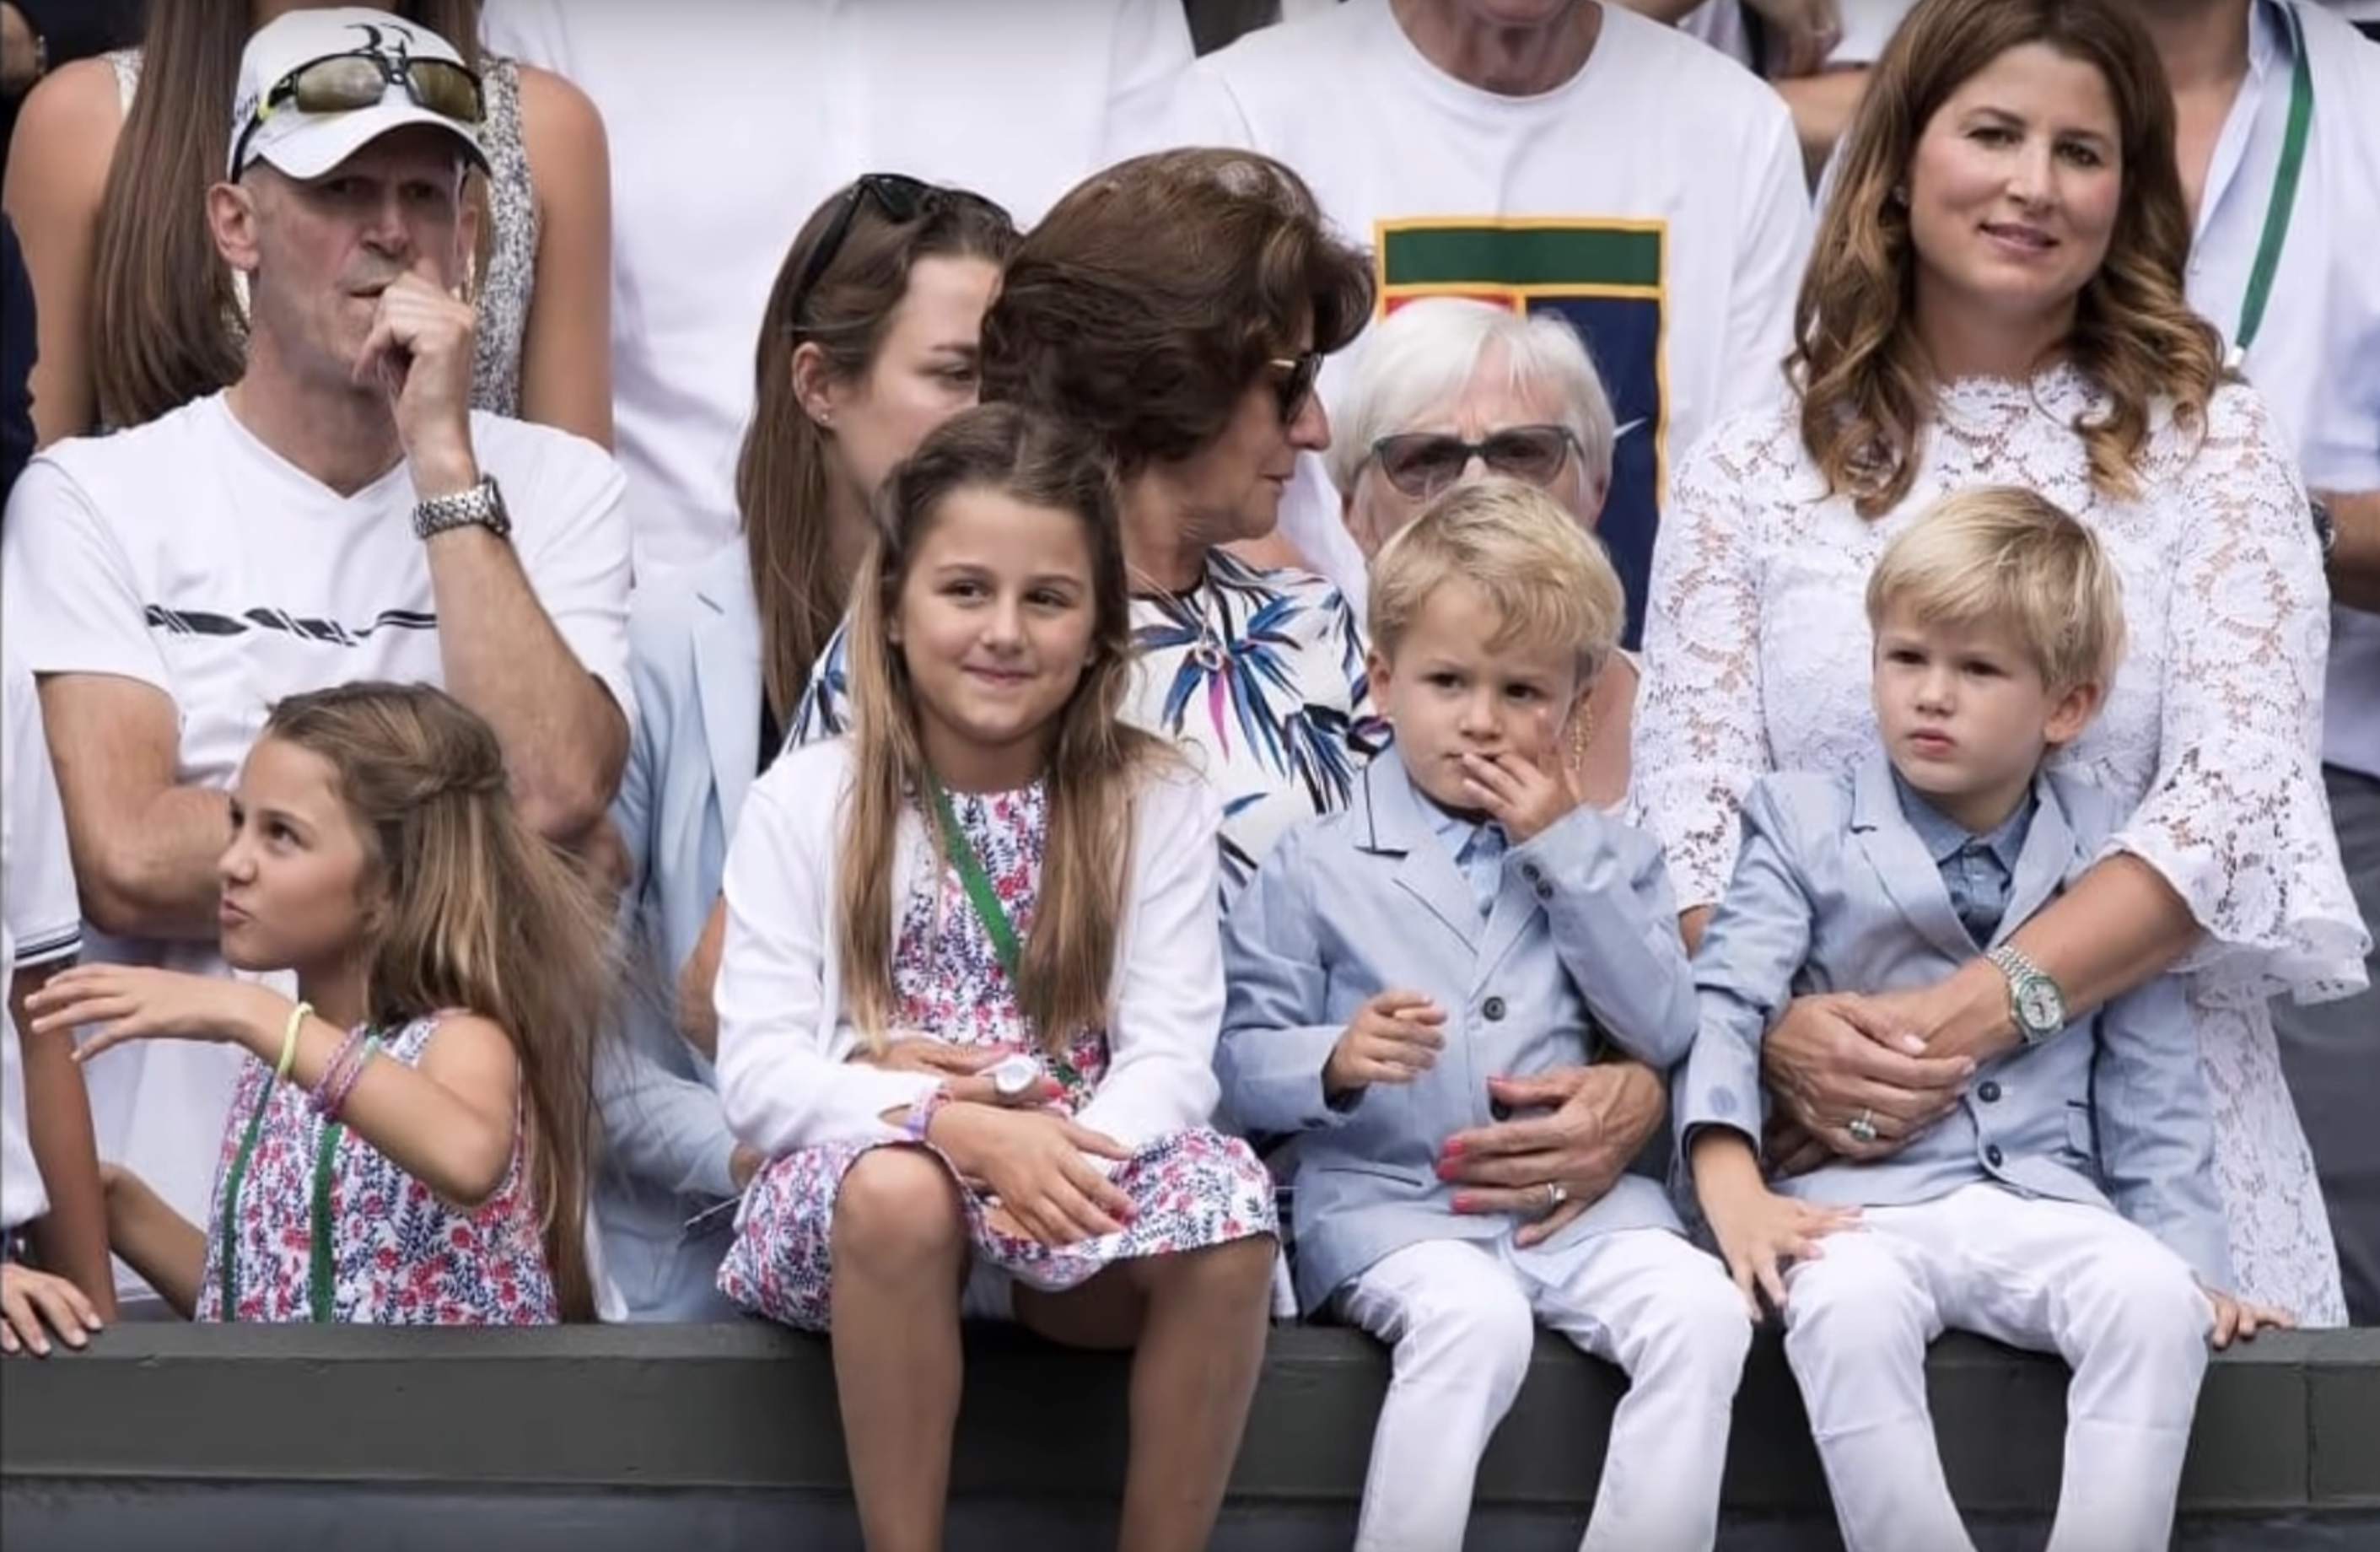 Roger Federer's wife and kids